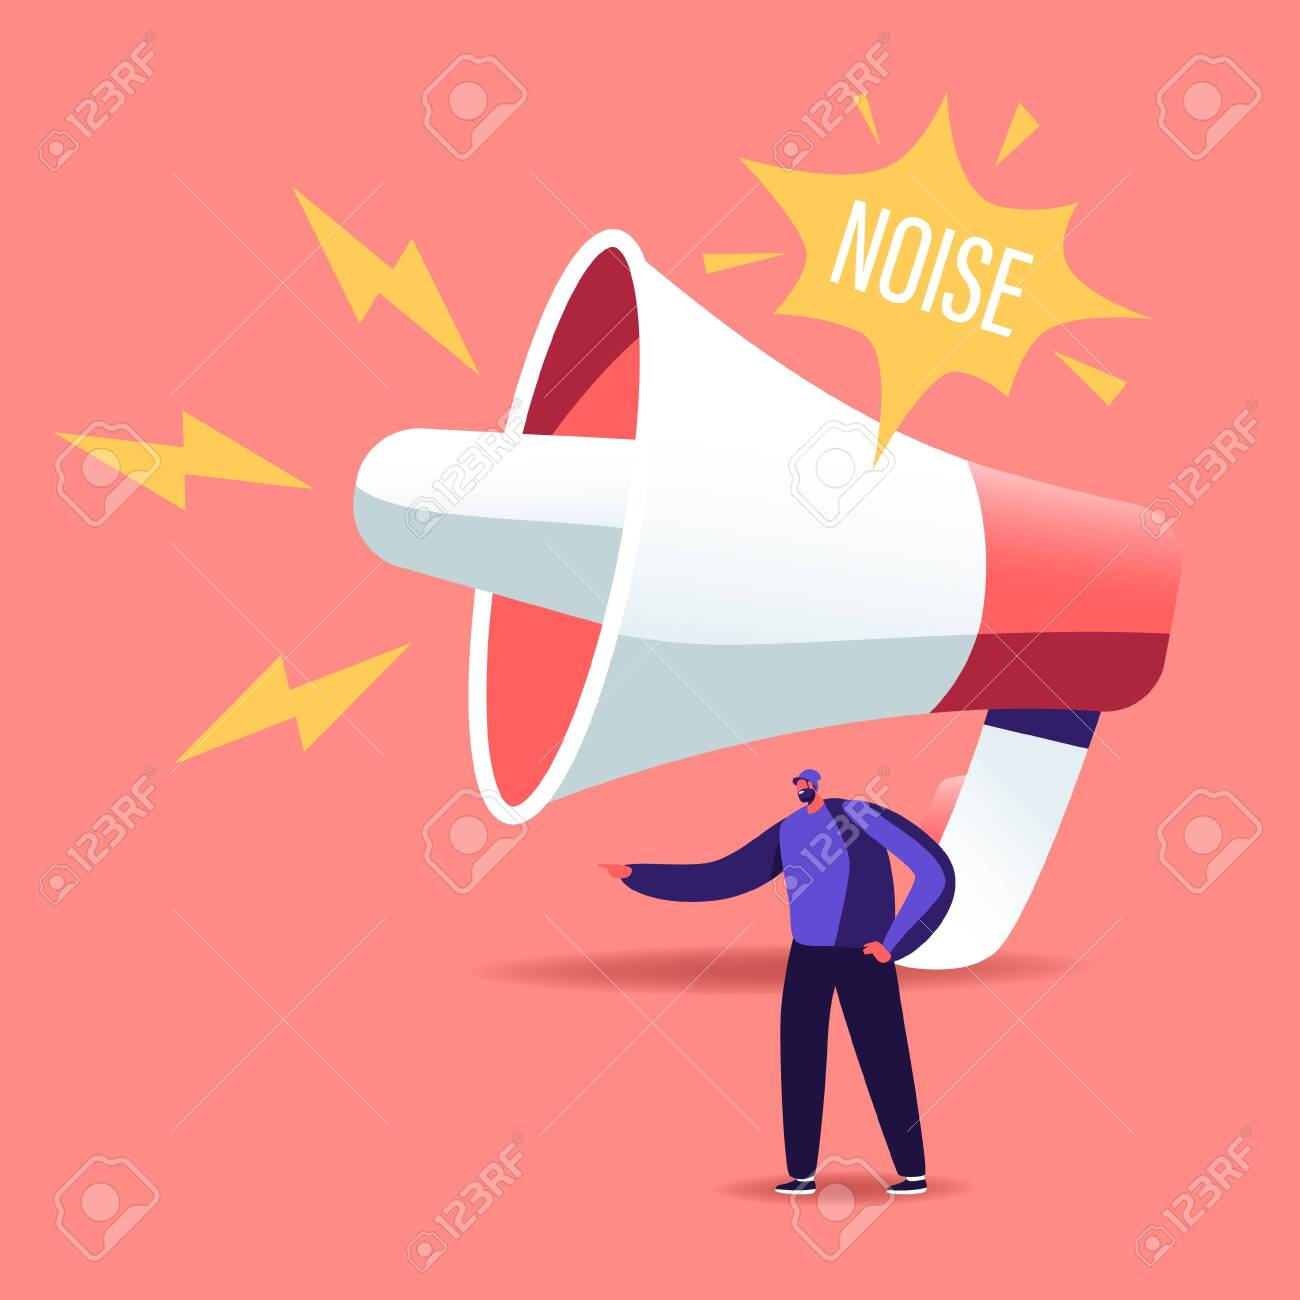 Tiny Male Character stand at Huge Megaphone Suffering of Noise Pollution. Big City Dweller Hearing Loud Sounds - 148097844